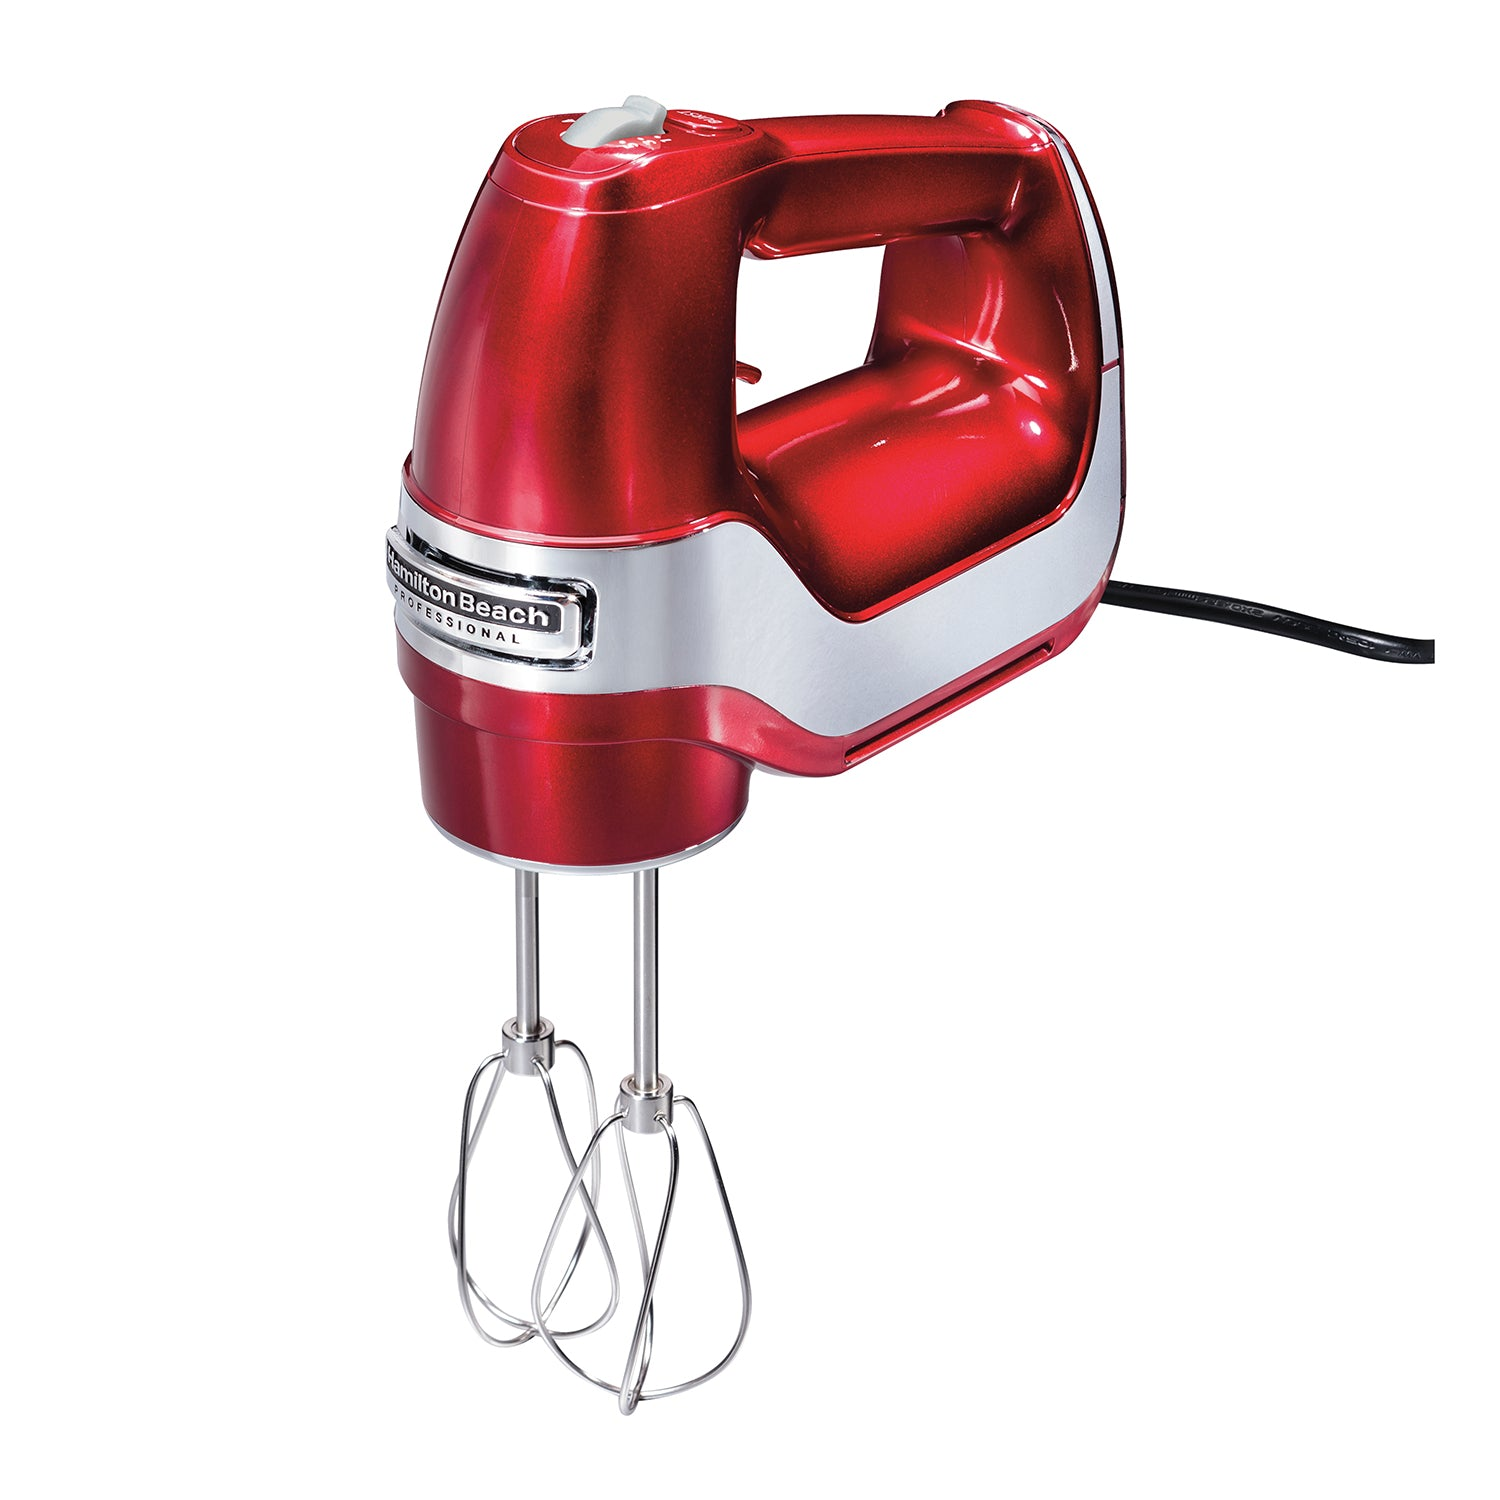 Hamilton Beach® Professional Hand Mixer 5 Speed, Red